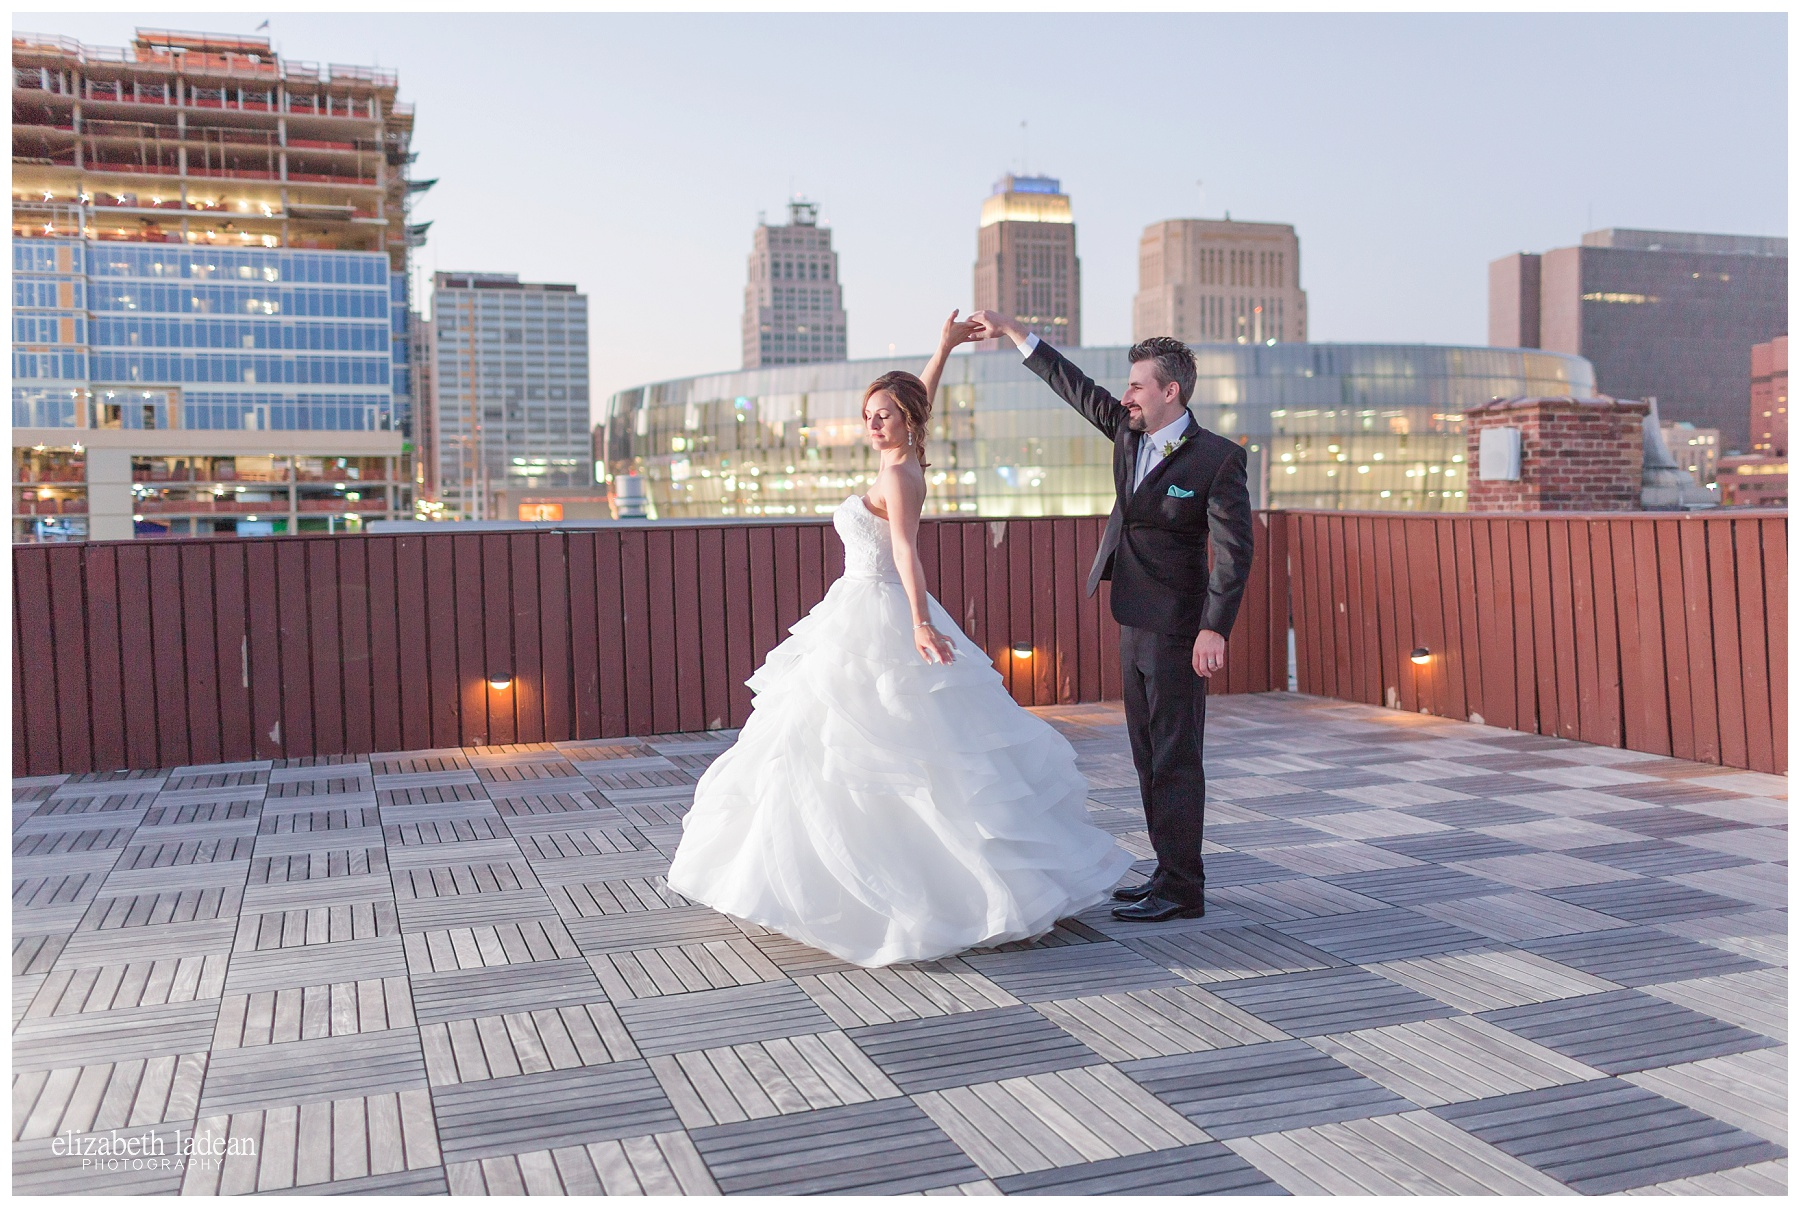 Terrace-on-Grand-Kansas-City-Wedding-Photography-C+J-0506-Elizabeth-Ladean-Photography-photo_0665.jpg